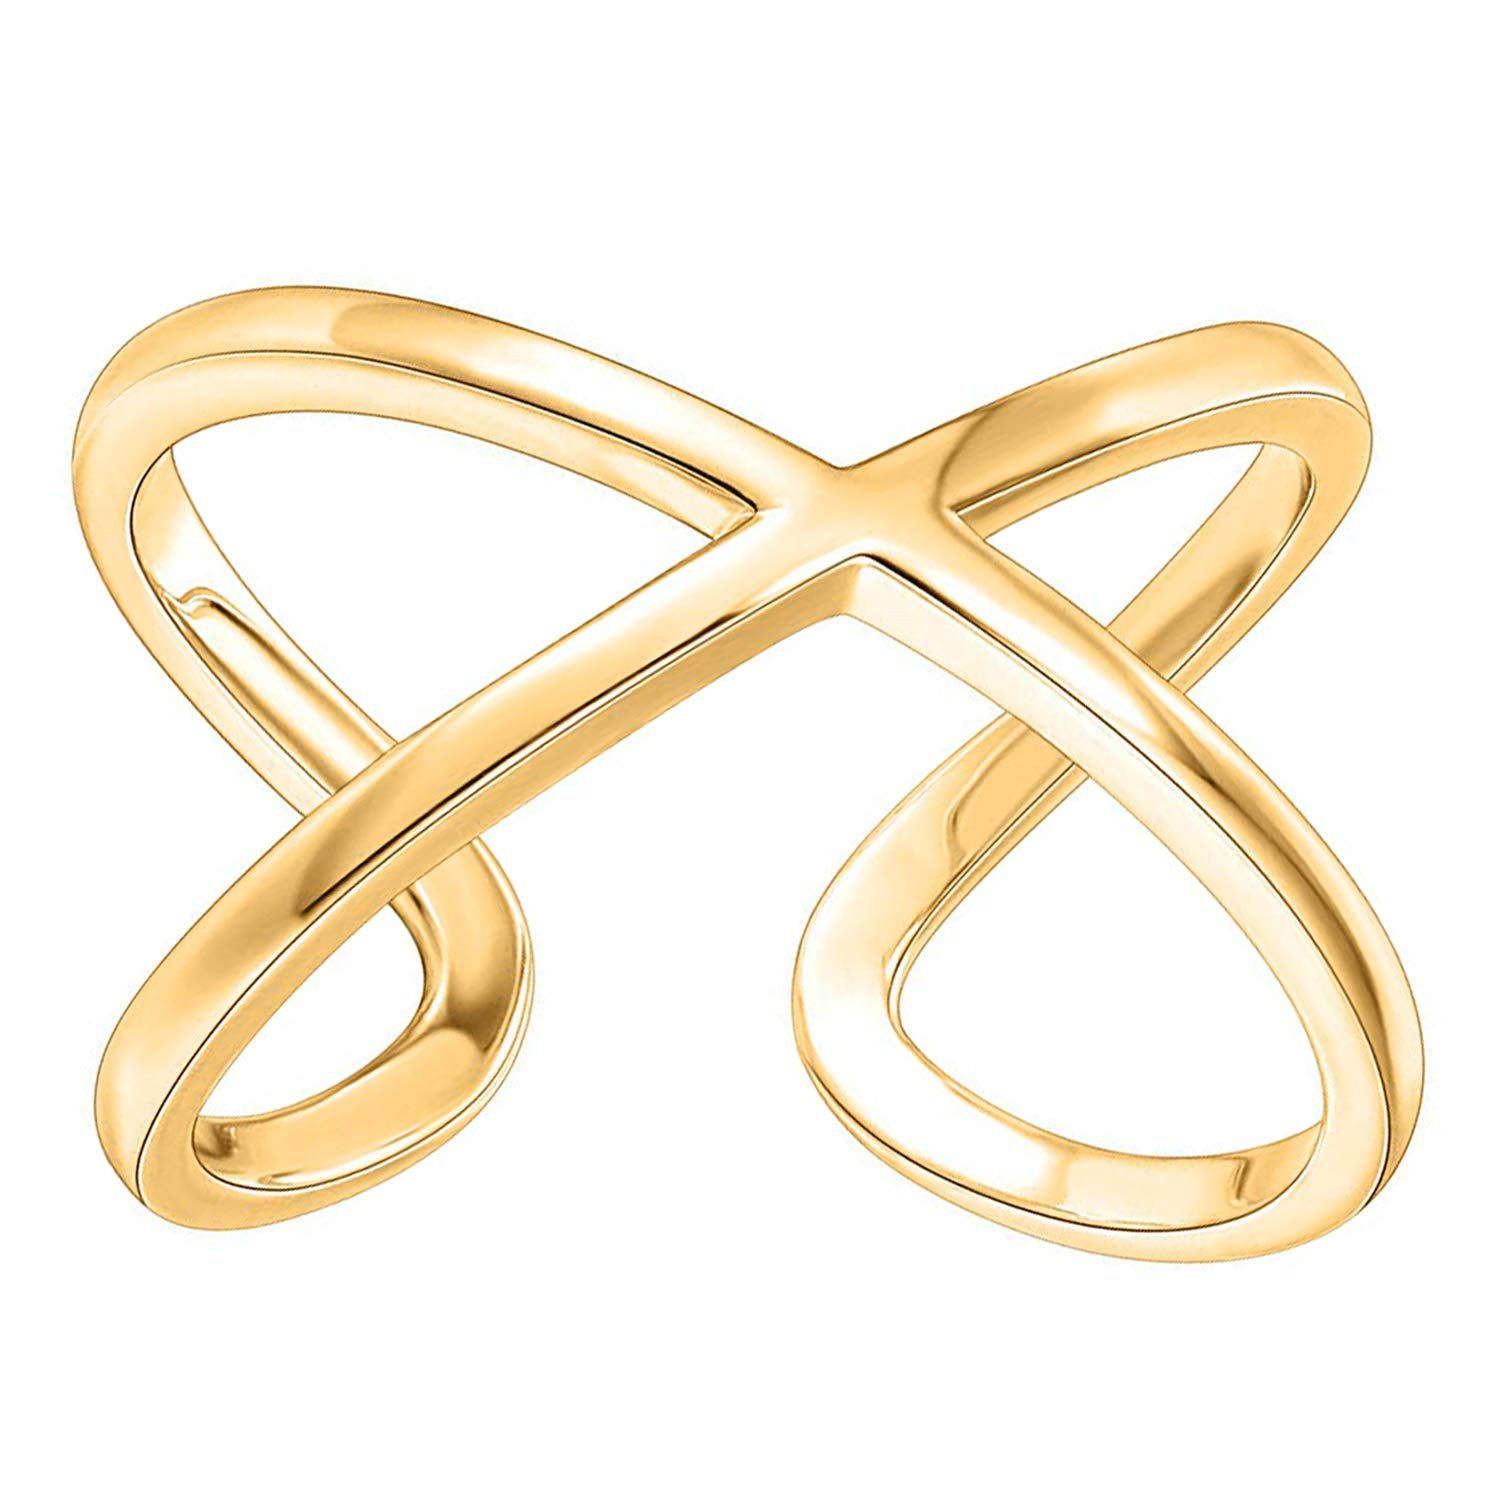 PAVOI 14K Gold Plated Crossover X Stackable Rings | Yellow Gold Rings for Women - Small Yellow by PAVOI